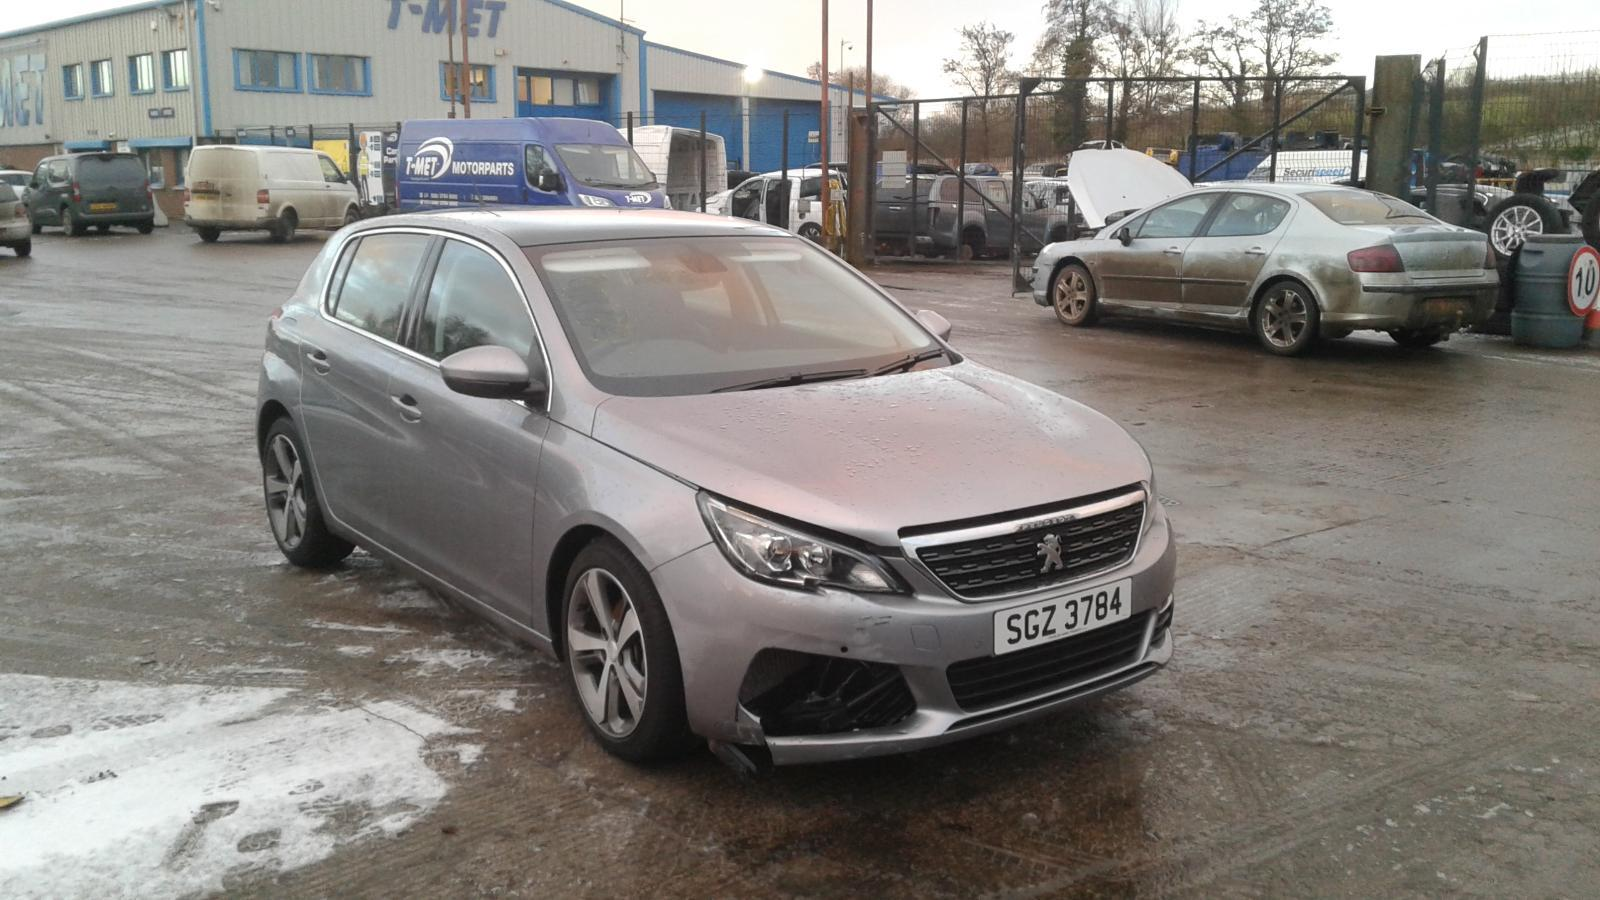 2020 PEUGEOT 308 FOR SALE £7600 ONO Image